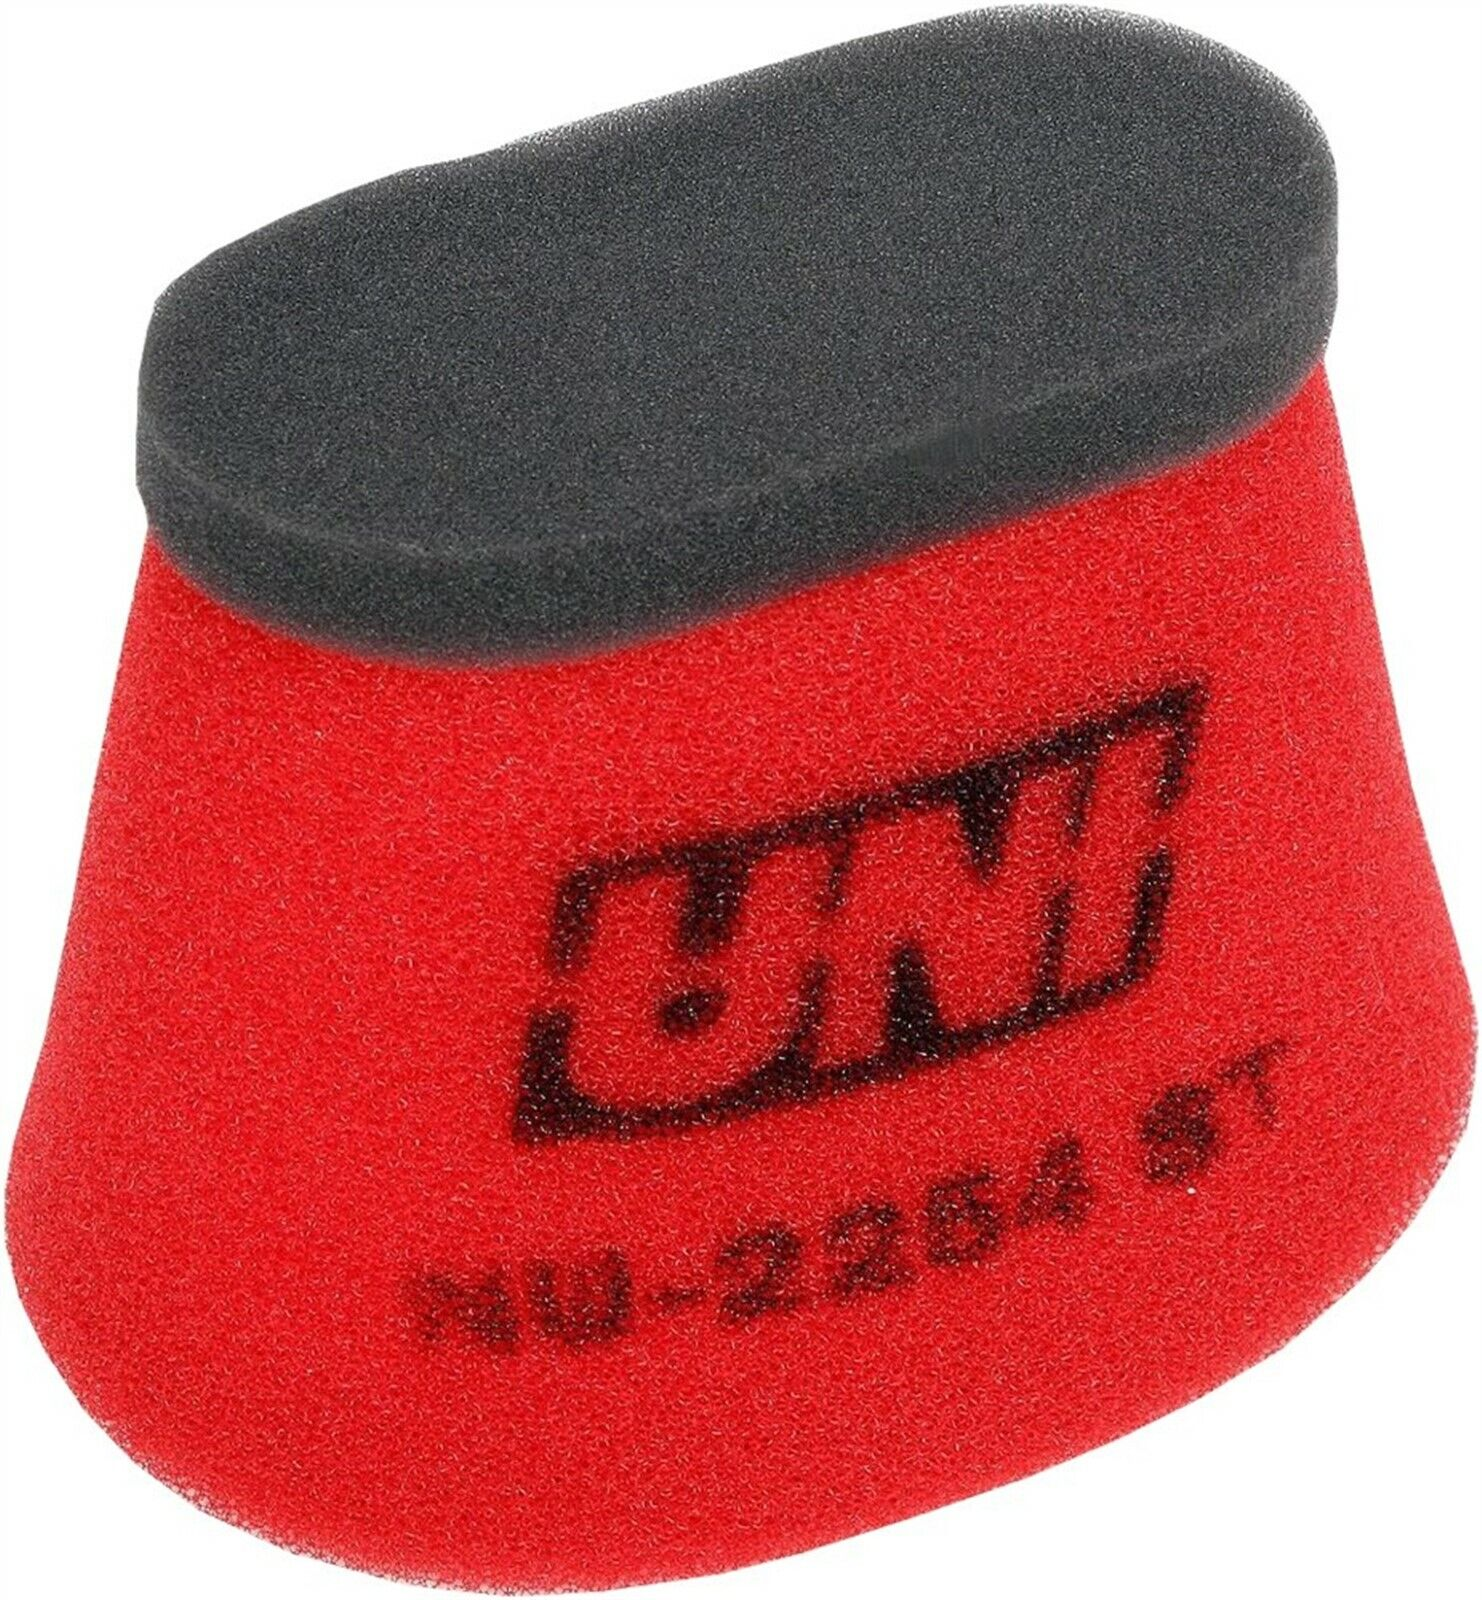 YAMAHA FZR400 FZR 400 1989-1990 UNI Foam Air Filter Made In USA